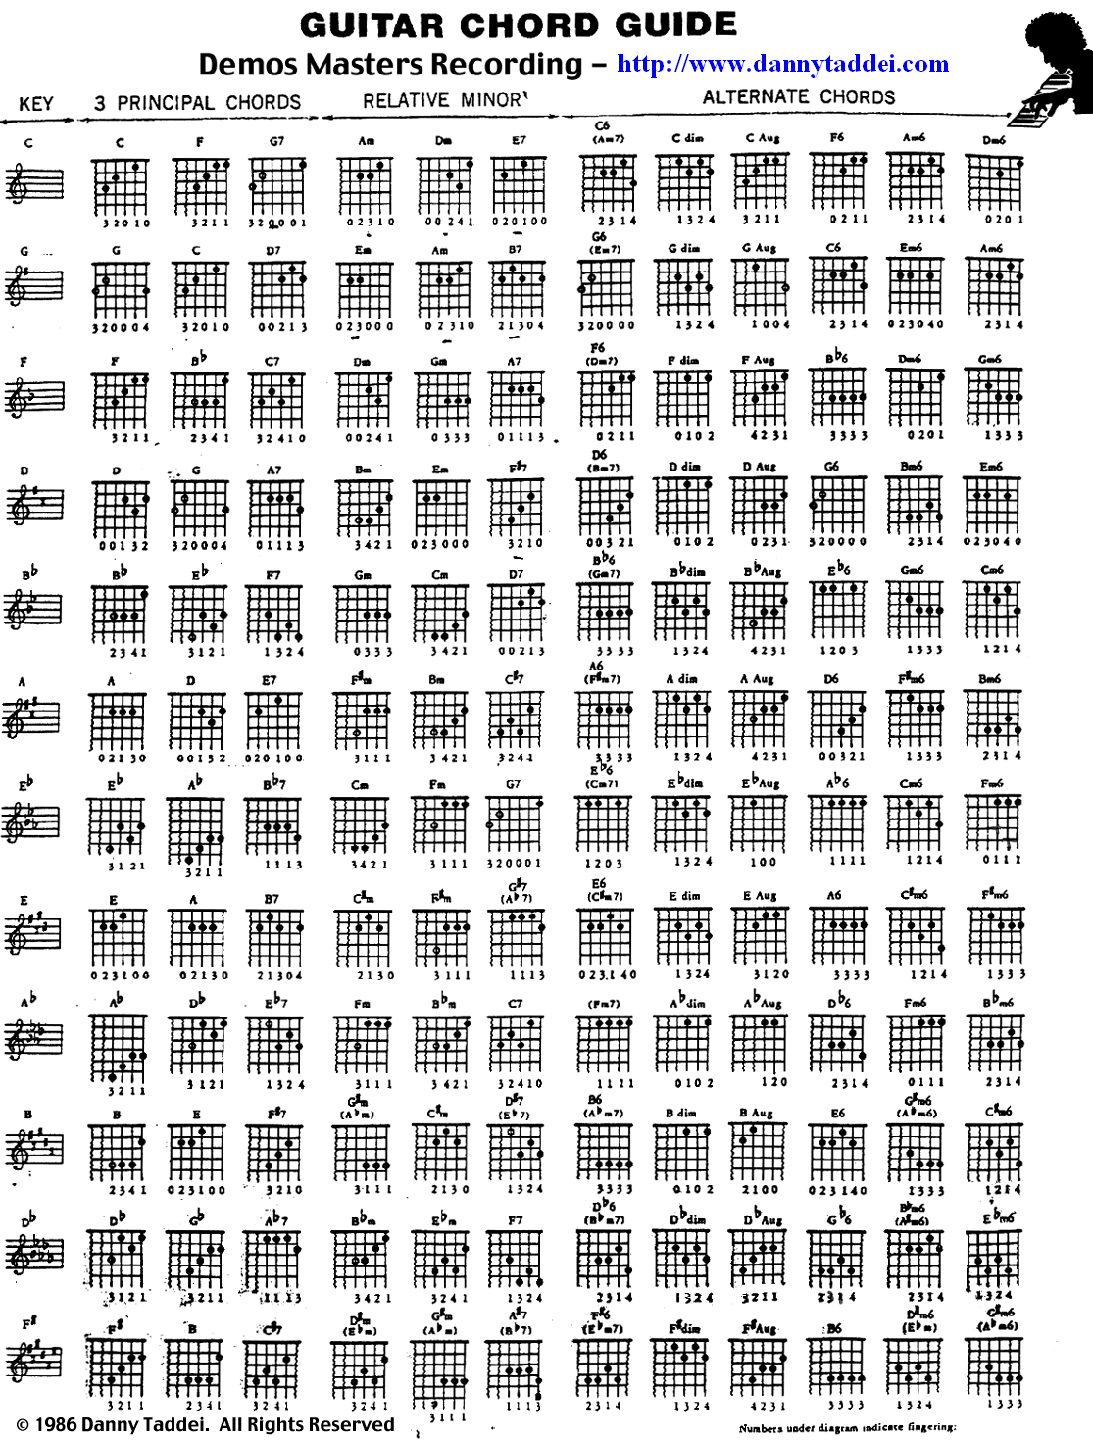 Welcome Guitar Chord Guide By Danny Taddei 1986